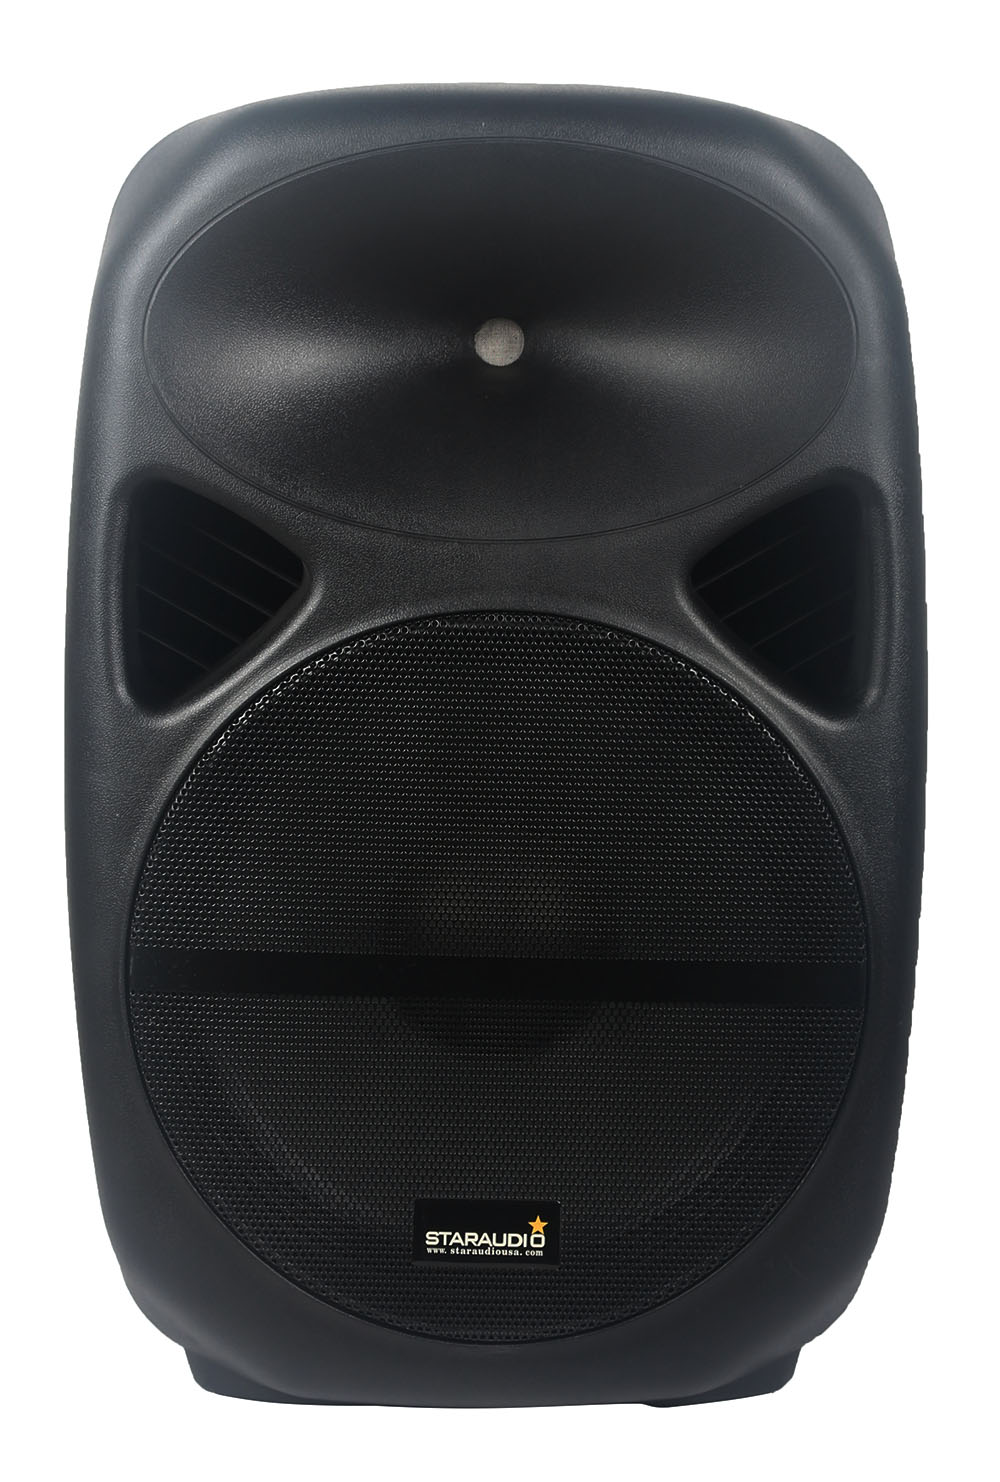 15 powered pa dj speakers with bluetooth sd card usb mp3 player for school play